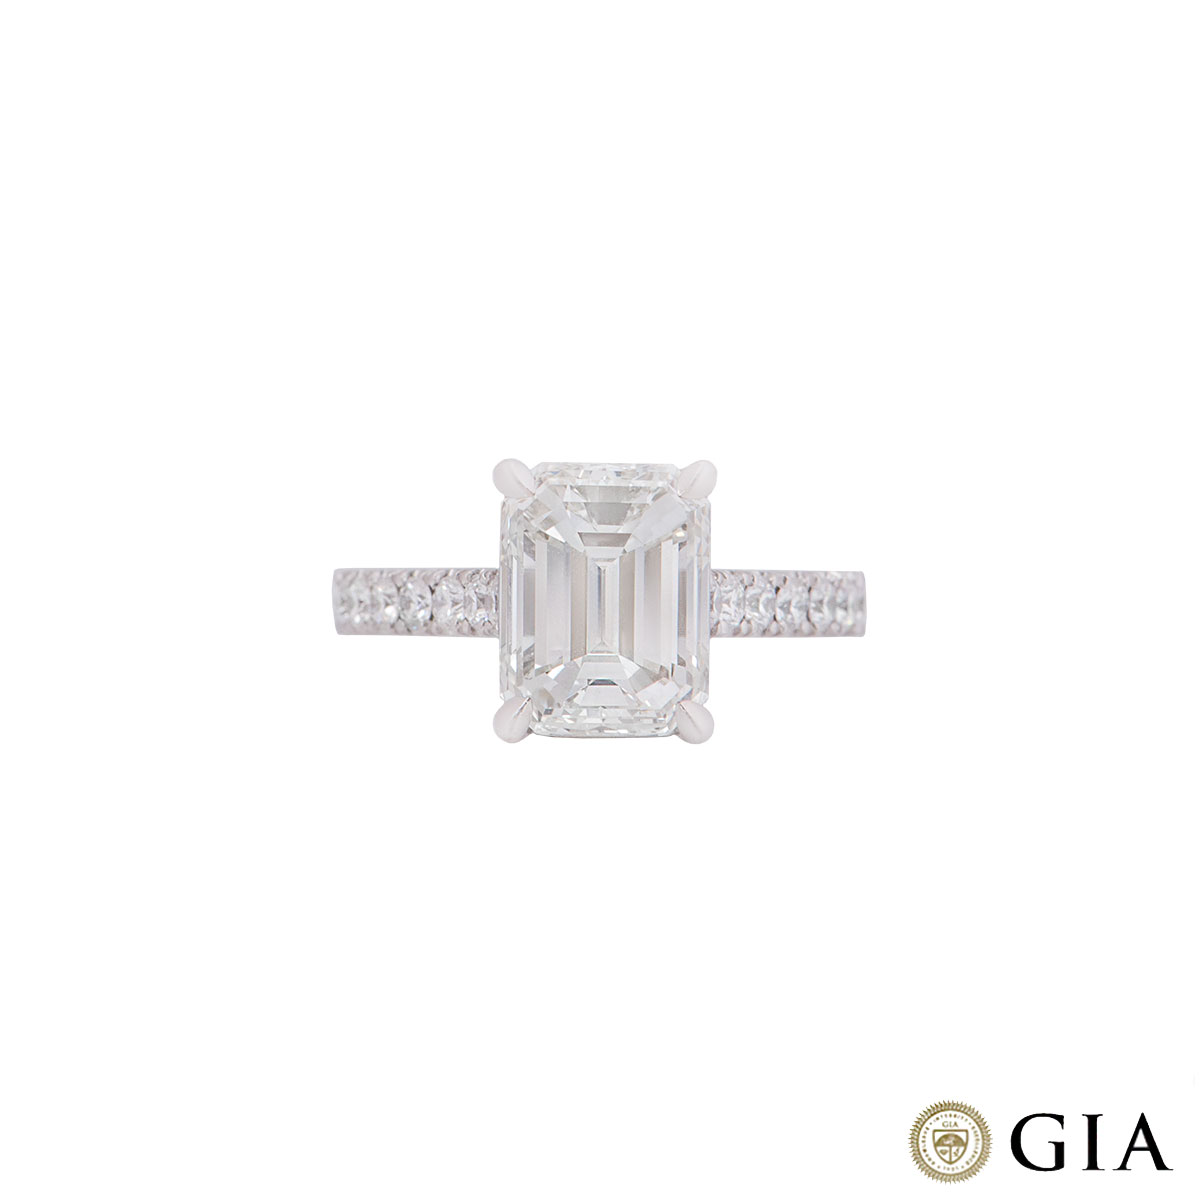 Platinum Emerald Cut Diamond Ring 3.02ct I/VVS1